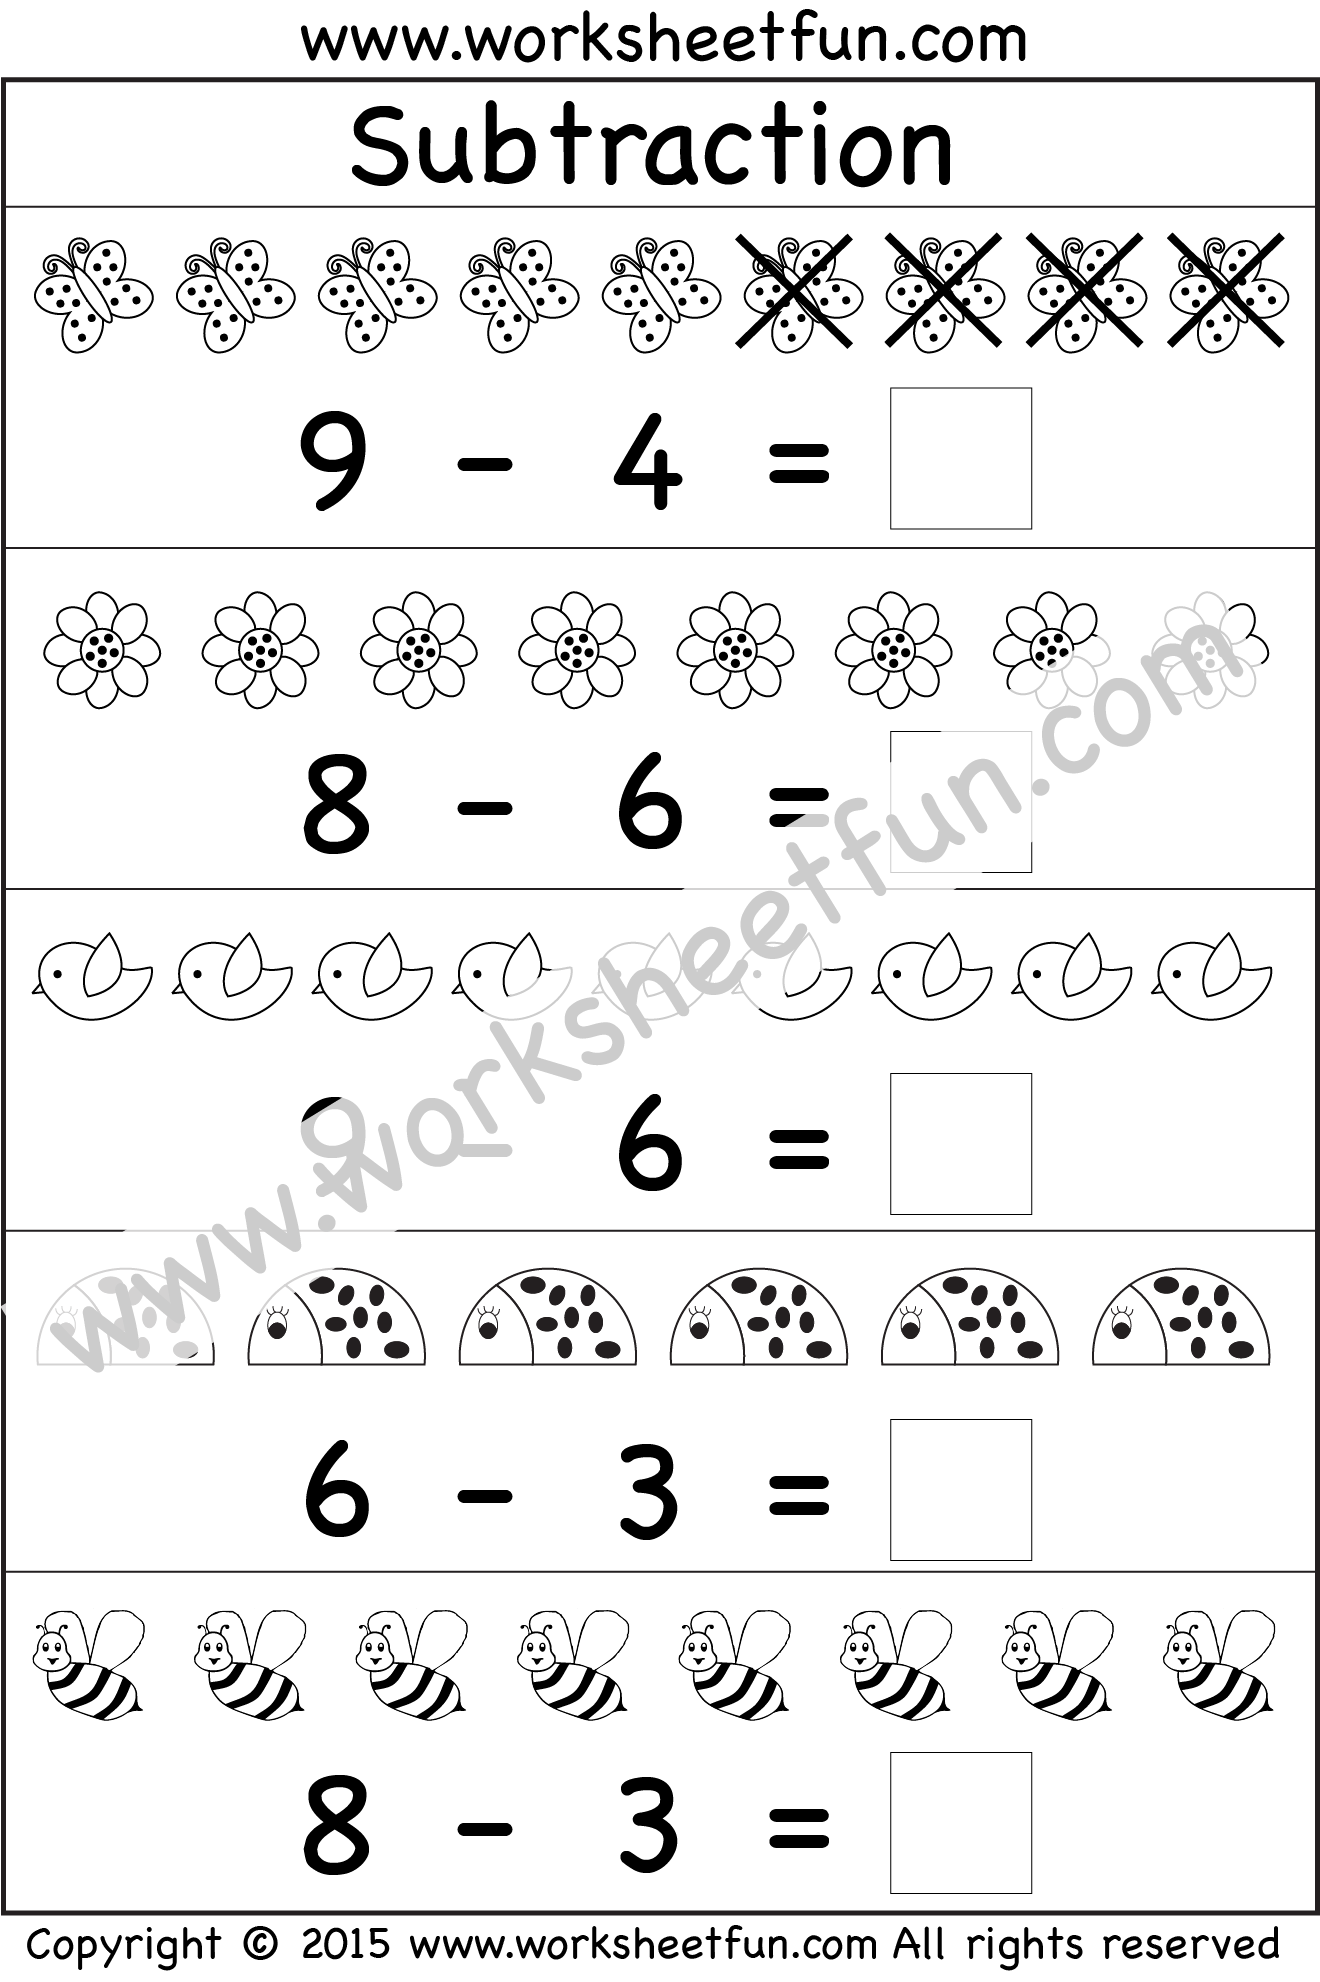 Kindergarten Subtraction With Images